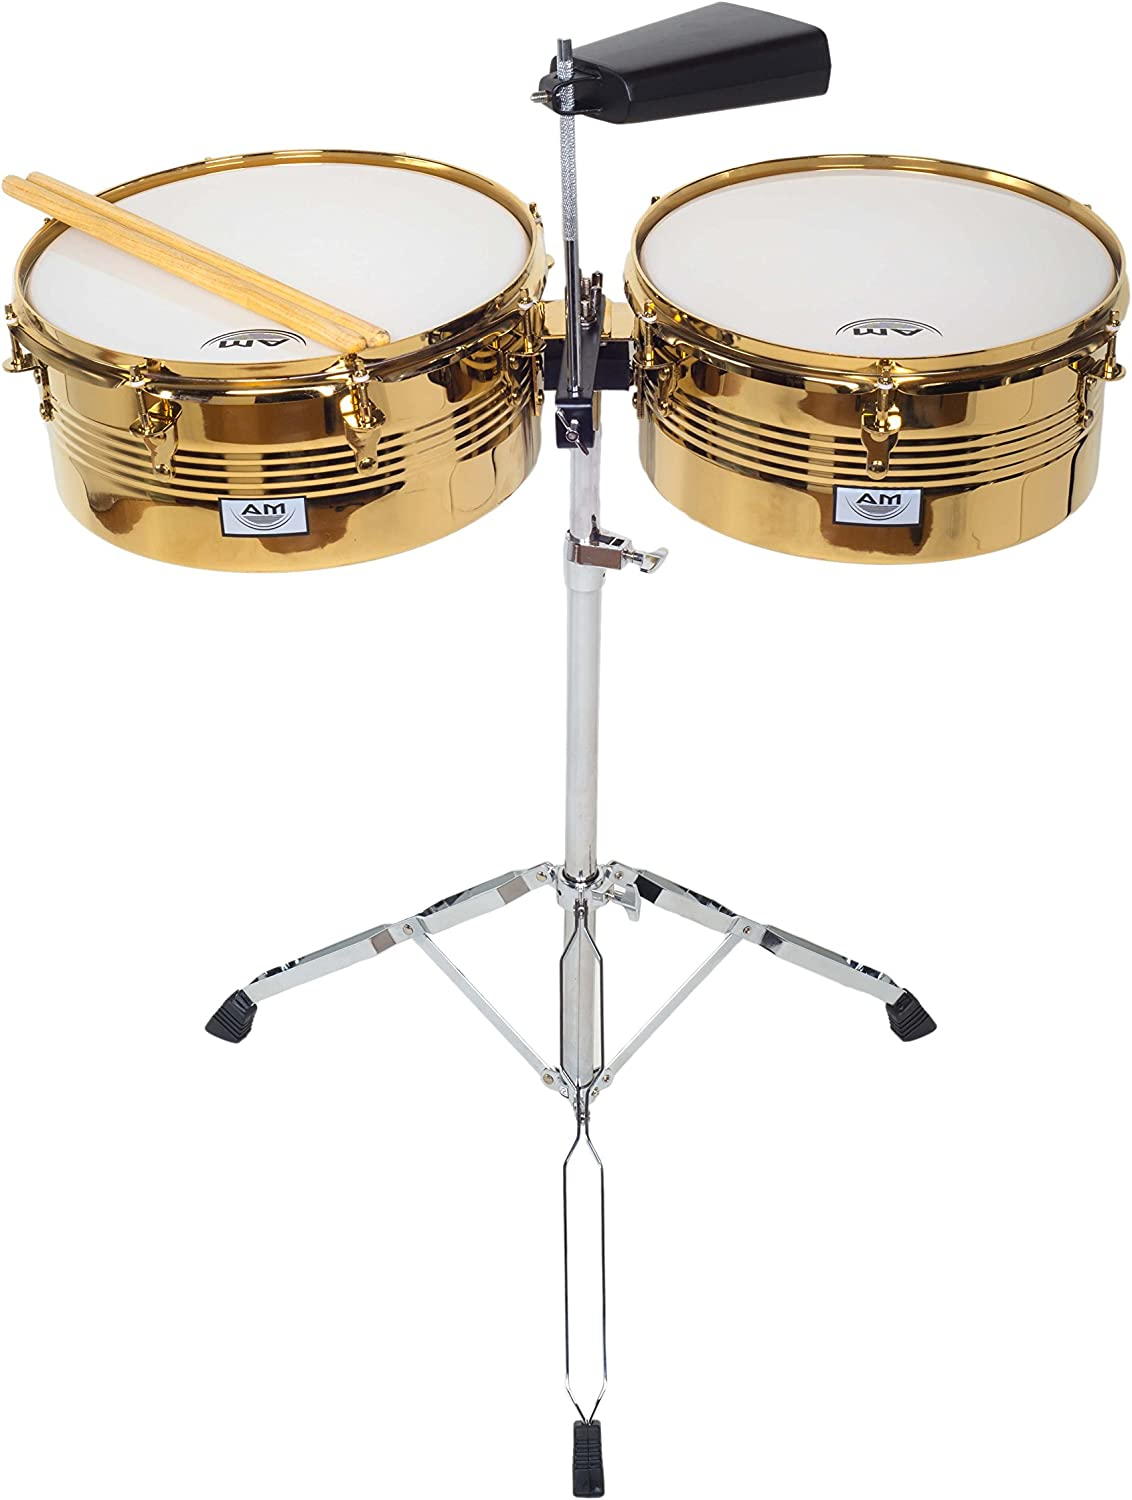 Durable Double Braced Stand and Drum Sticks AM Percussion LIBRE GX2 Timbale Set GOLD CHROME with Cowbell